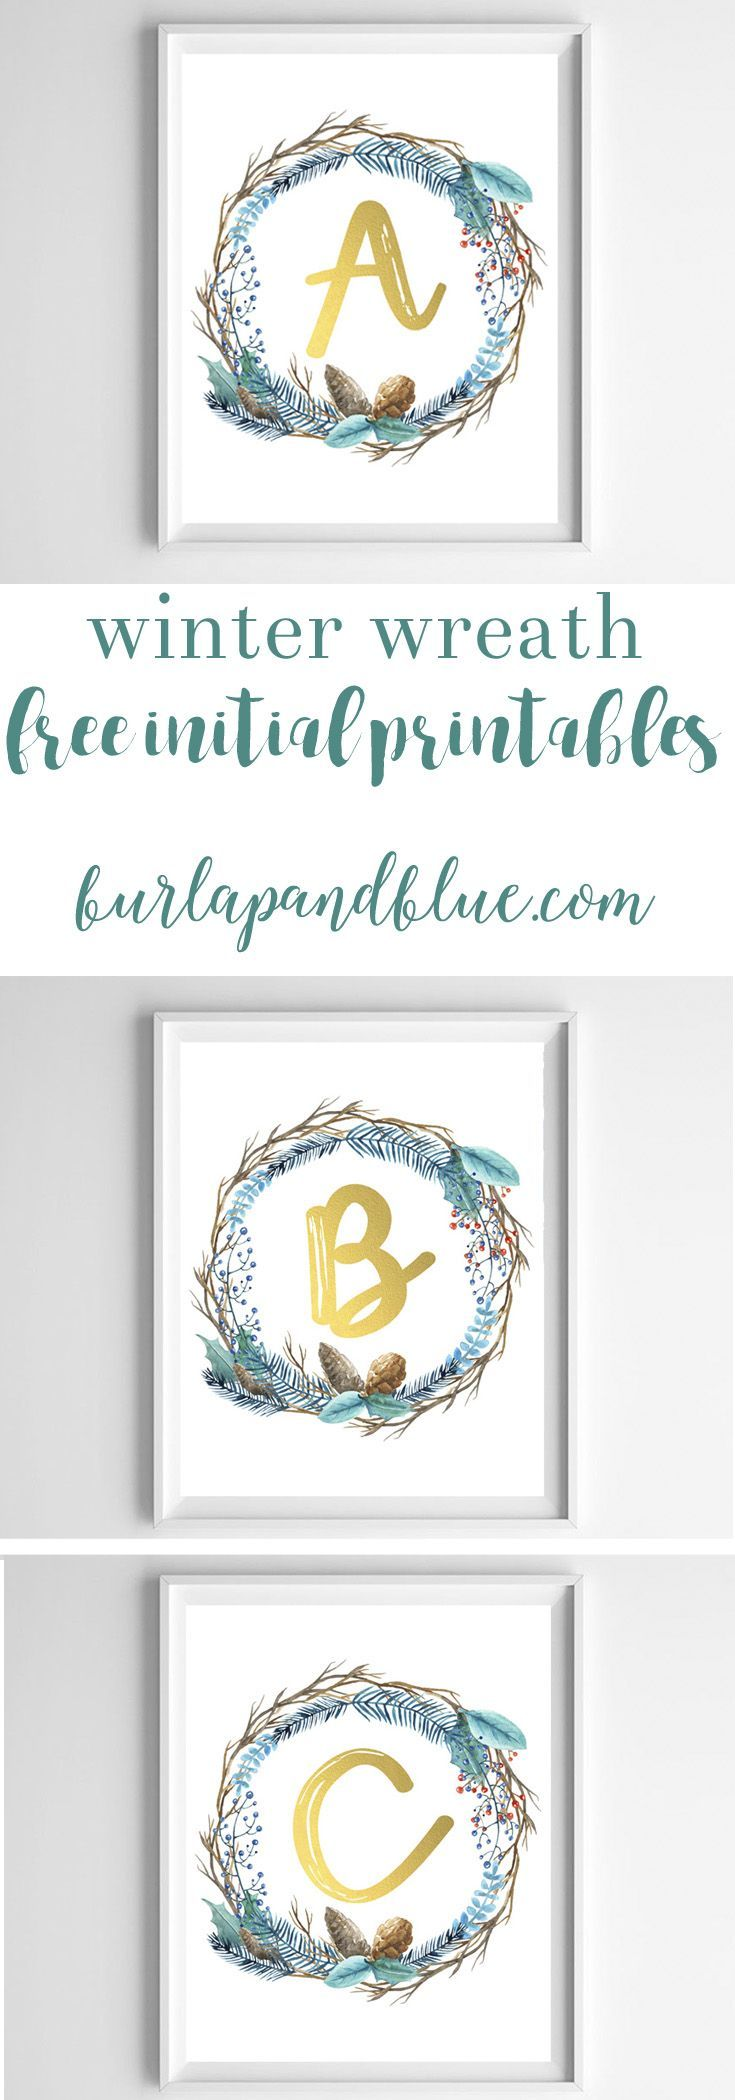 Free Printables | Initial Printable Art | Winter Wreath | Home Decor | Wall Art Ideas | DIY Crafts | Teal Blue | Rustic | Farmhouse | Fixer Upper Style